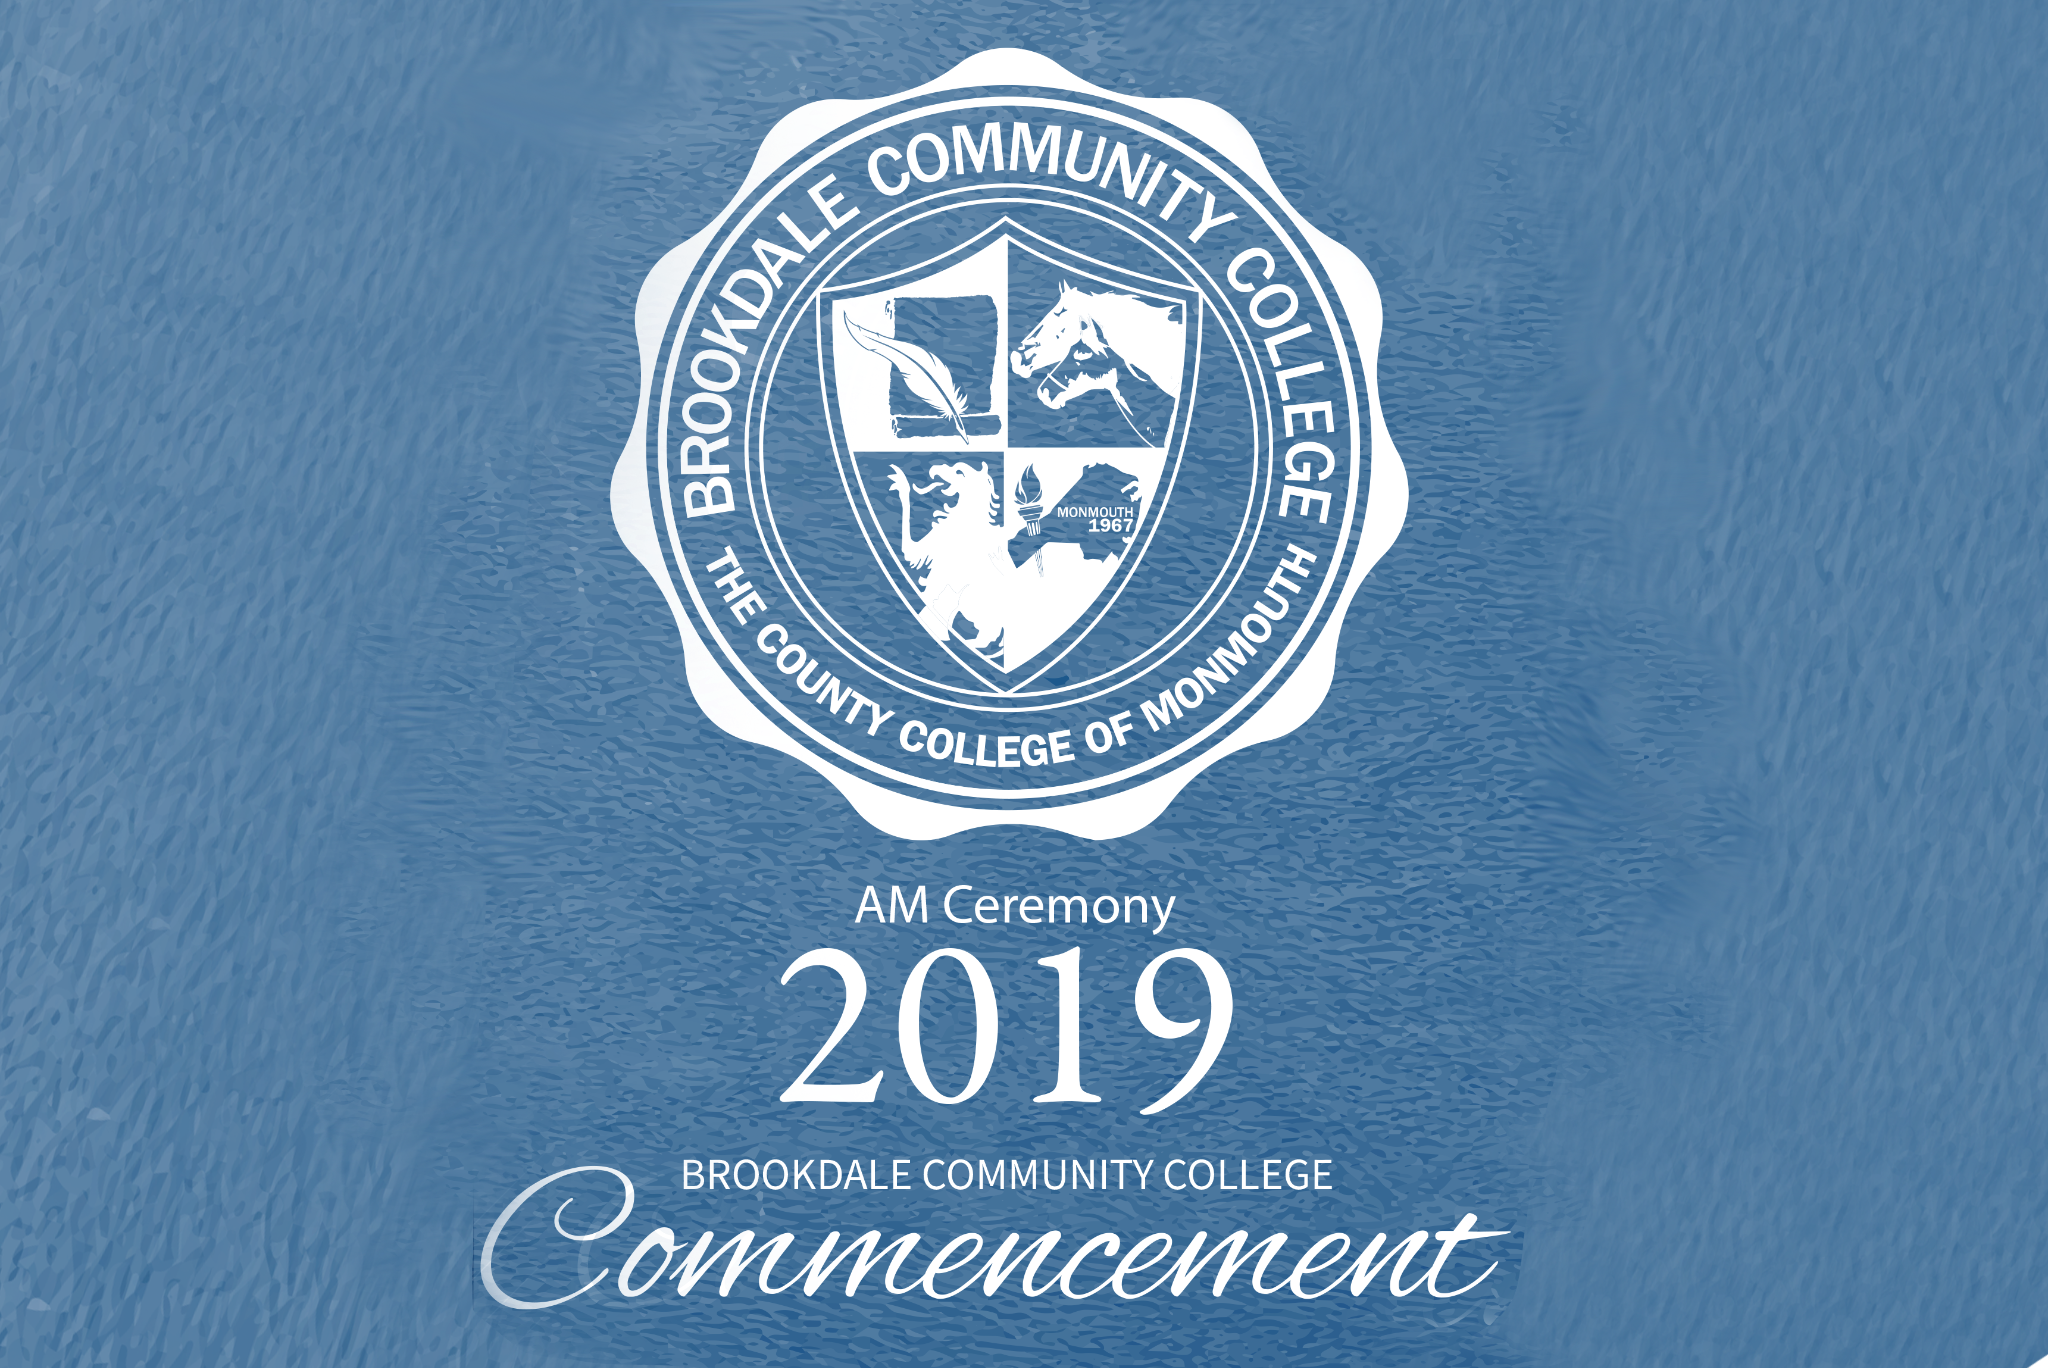 Brookdale Community College 2019 Commencement Ceremony AM